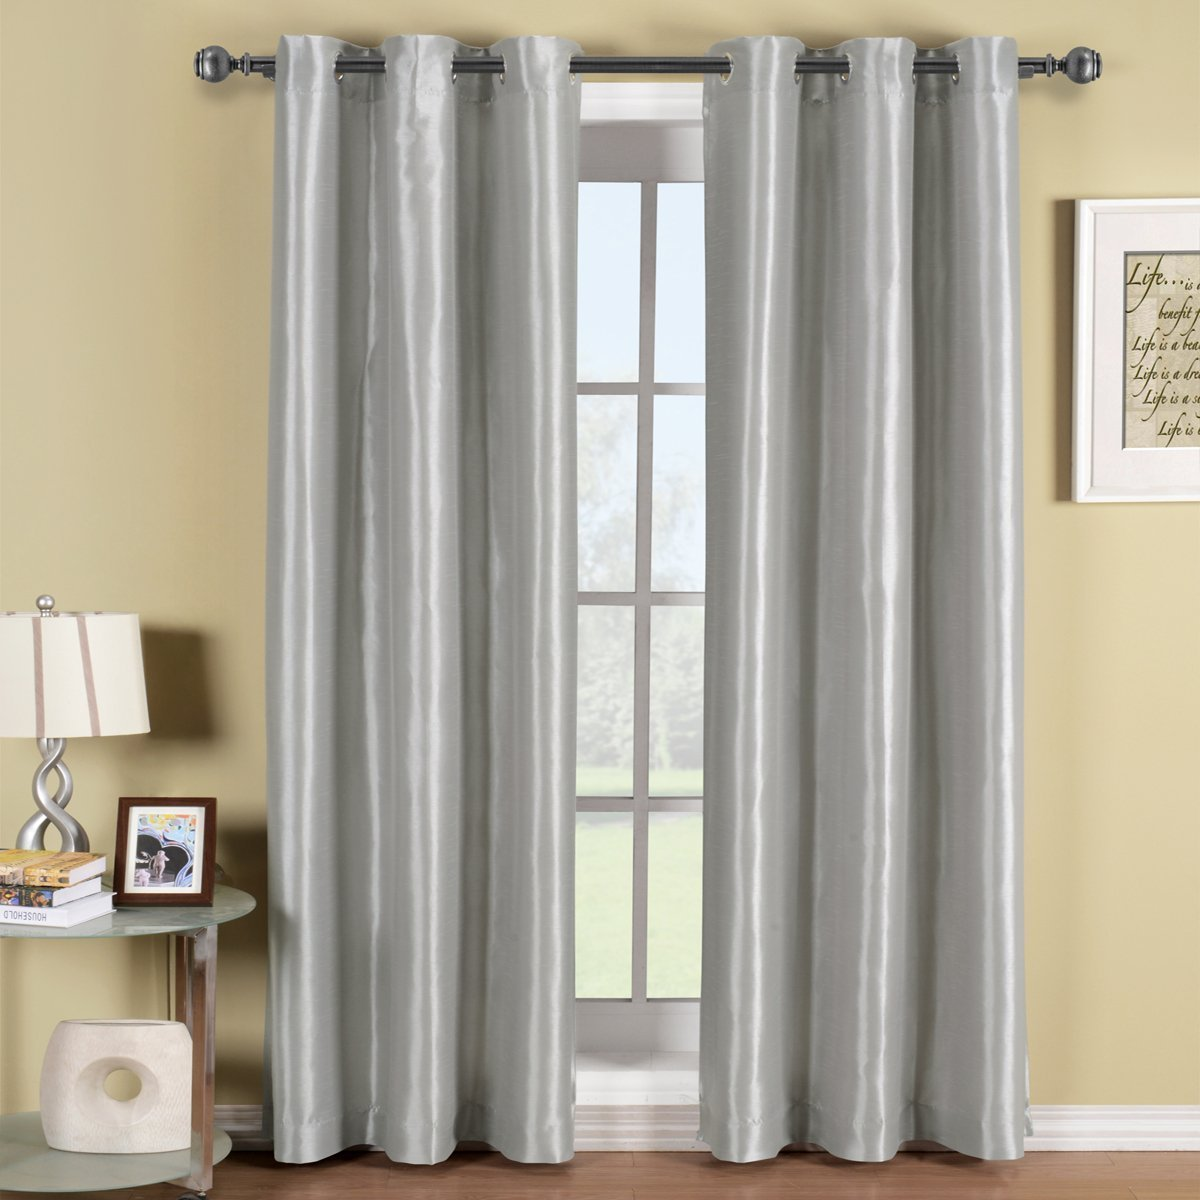 Royal Hotel Soho Silver Grommet Blackout Window Curtain Panel, Solid Pattern, 42x63 inches, by